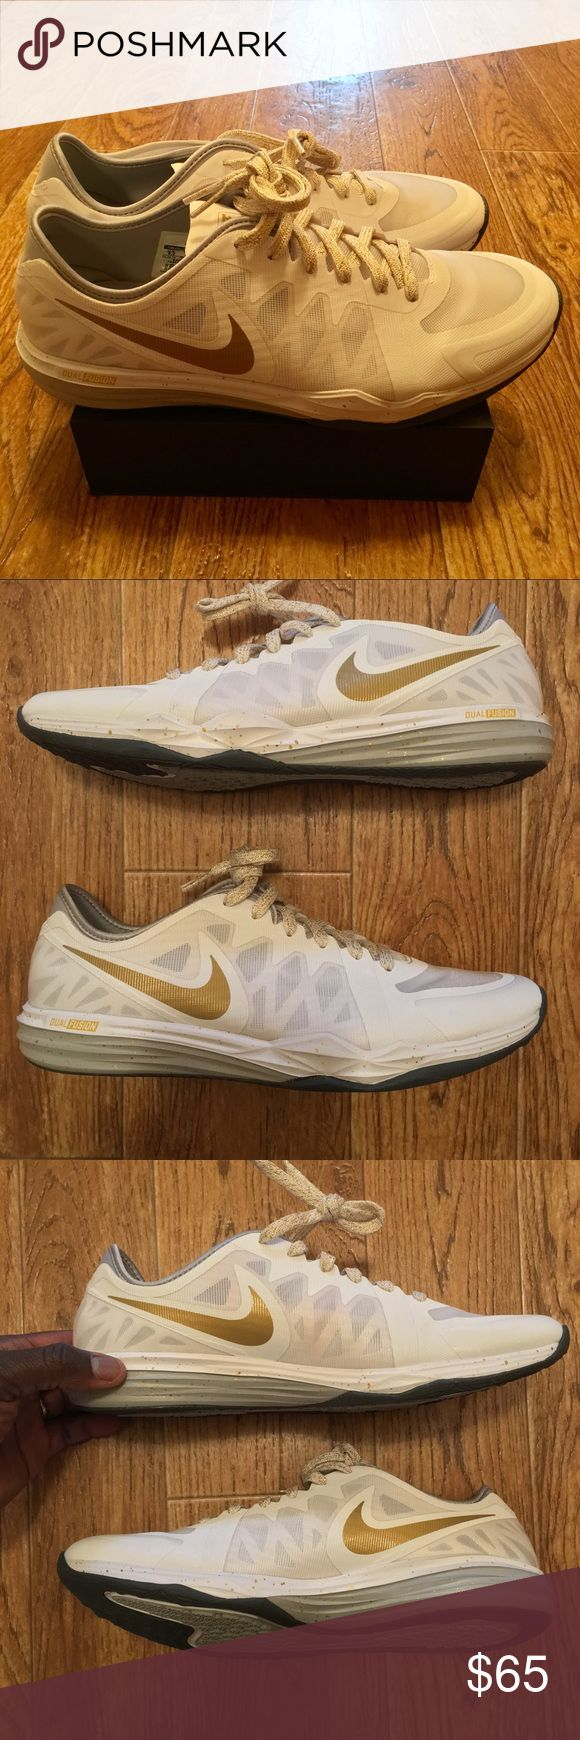 [Nike] Dual Fusion TR3 Women's Running Shoes Sz9.5 NEW Nike Dual Fusion Women Running Shoes White/Gold Size 9.5 Nike Shoes Athletic Shoes